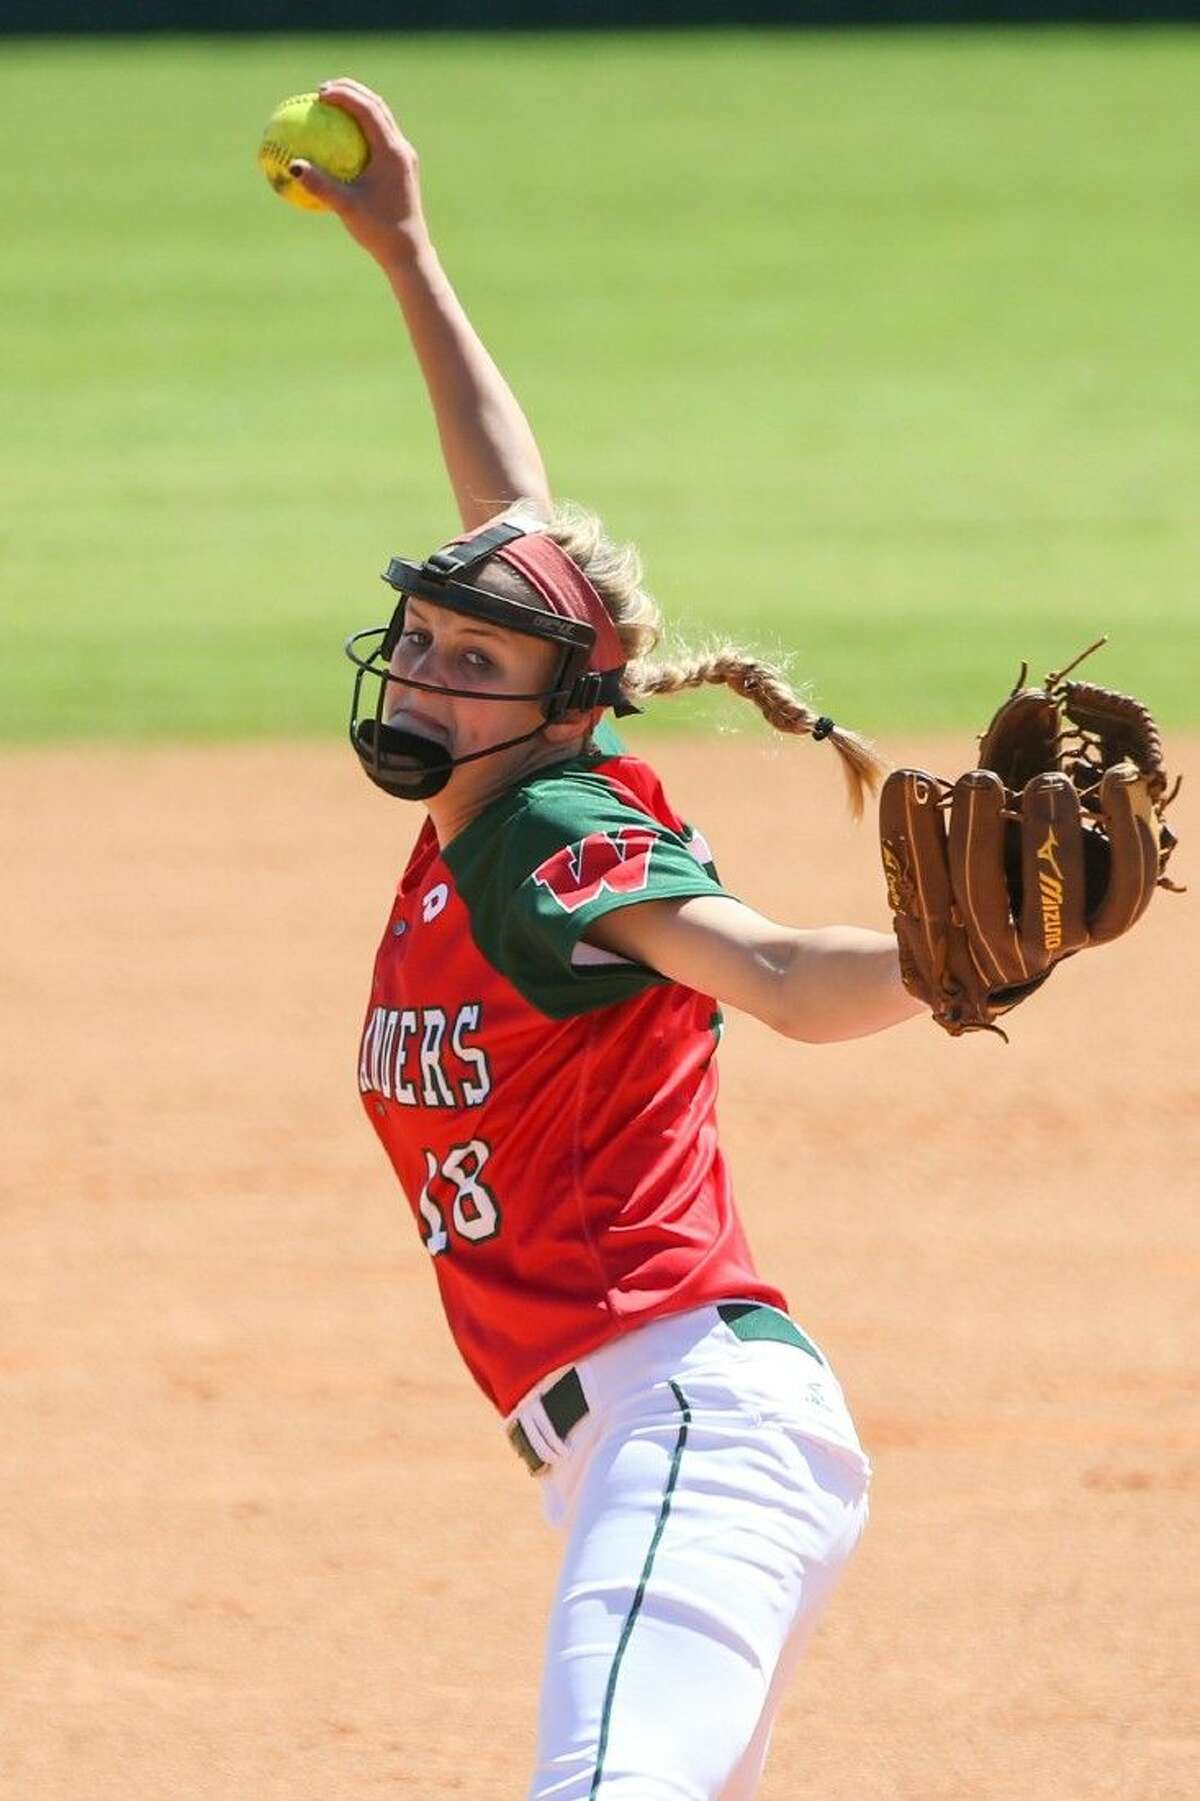 The Woodlands' Emily Langkamp (18) throws a pitch during a high school softball game against College Park on Saturday at The Woodlands High School. To view more photos from the game, go to HCNPics.com.